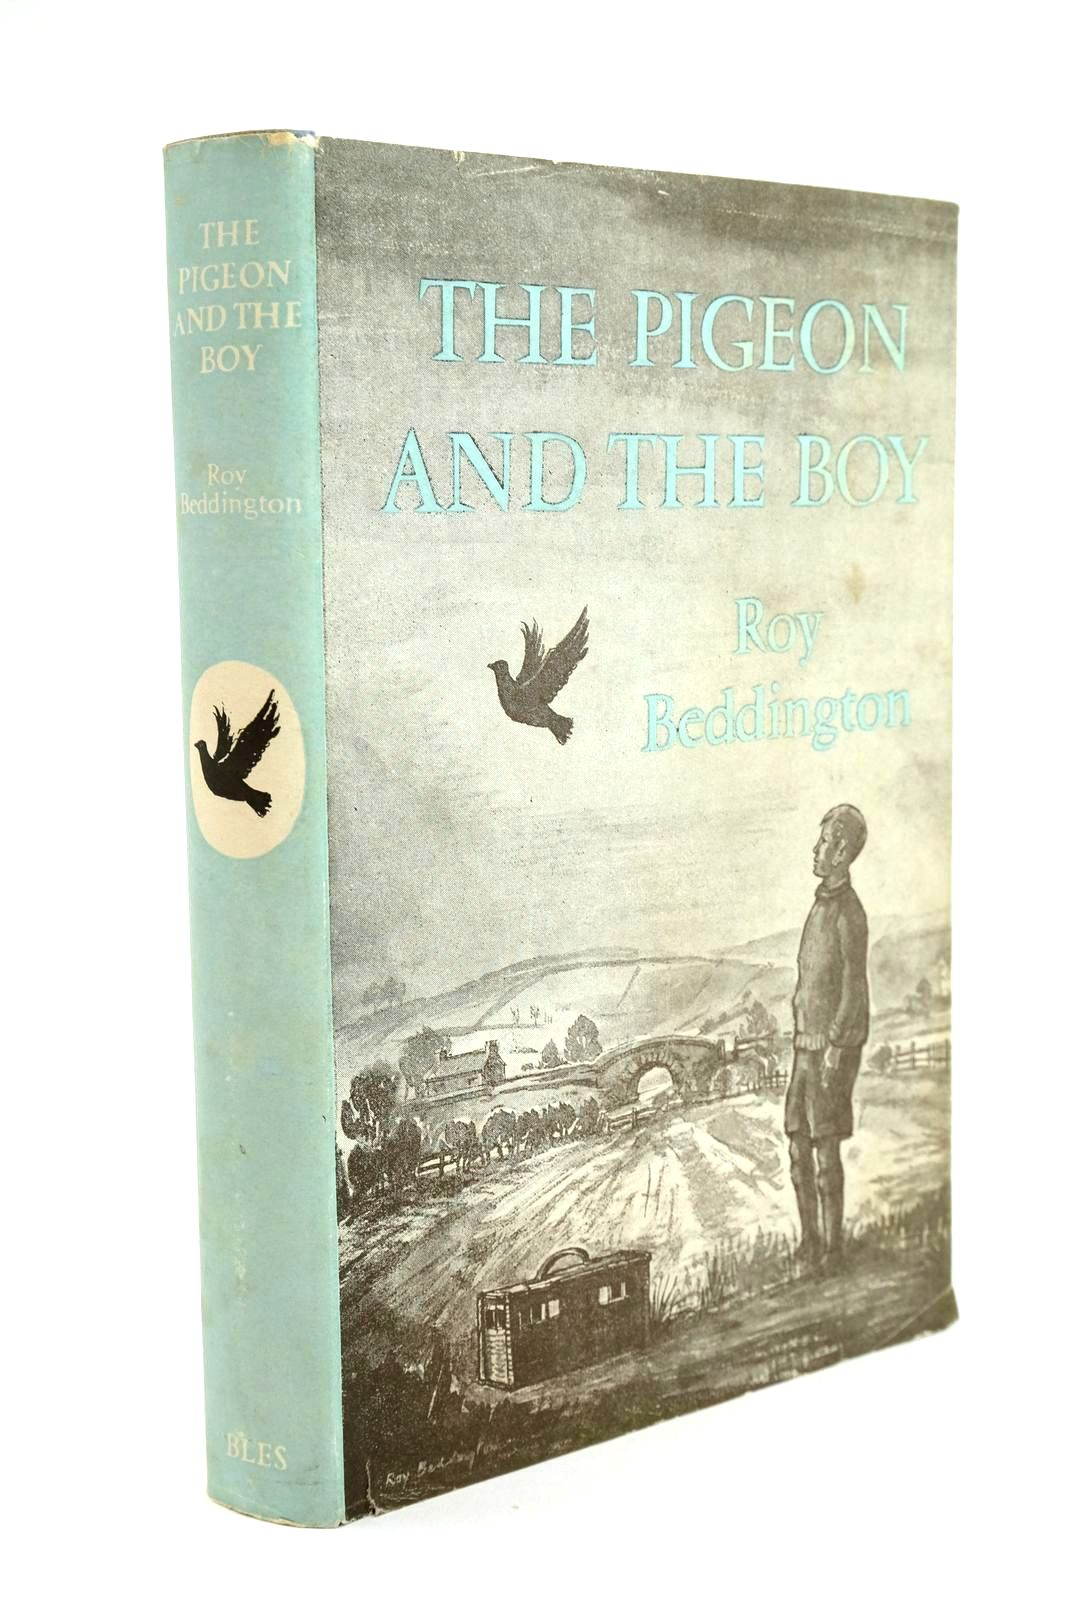 Photo of THE PIGEON AND THE BOY written by Beddington, Roy illustrated by Beddington, Roy published by Geoffrey Bles Ltd. (STOCK CODE: 1321663)  for sale by Stella & Rose's Books